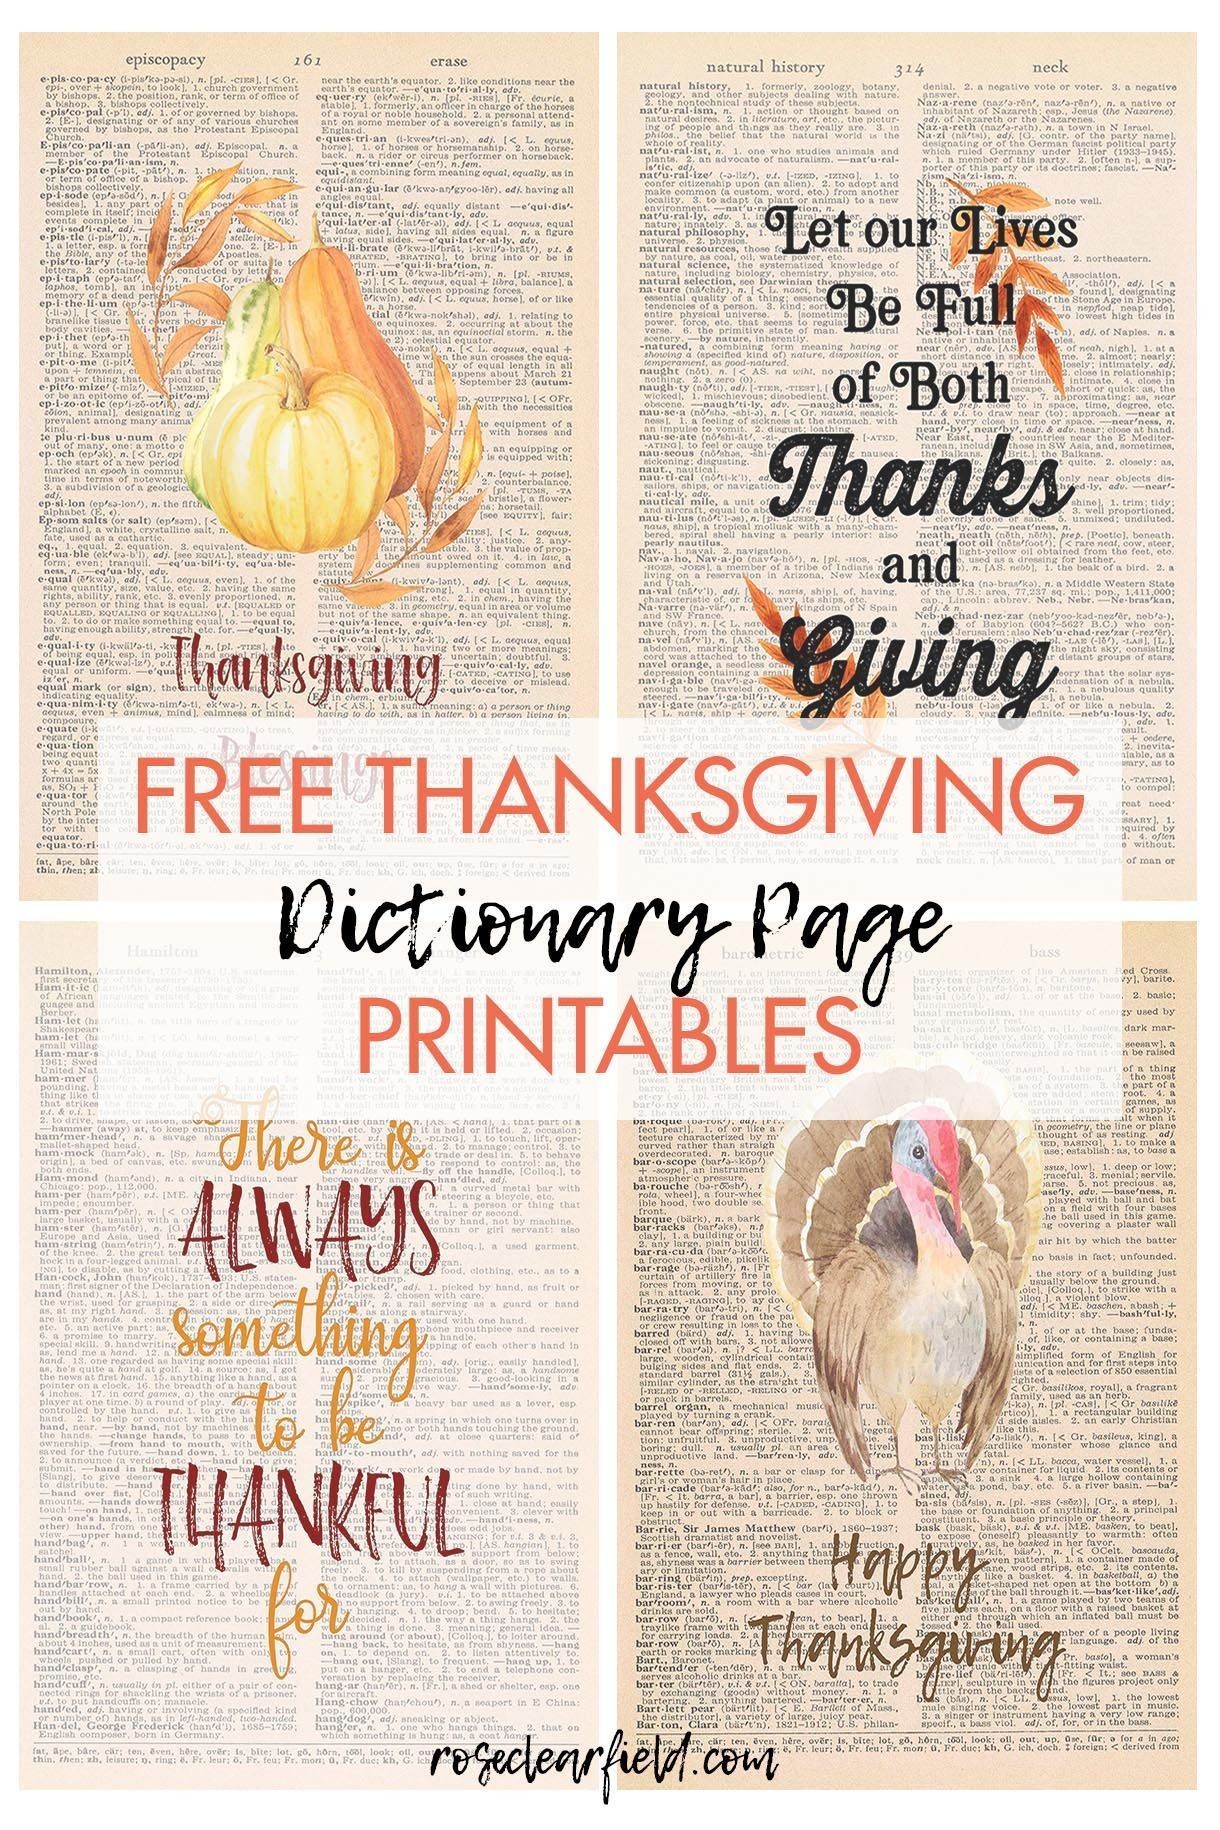 12 Free Thanksgiving Dictionary Page Printables In 2020 Free Thanksgiving Free Thanksgiving Printables Thanksgiving Printables